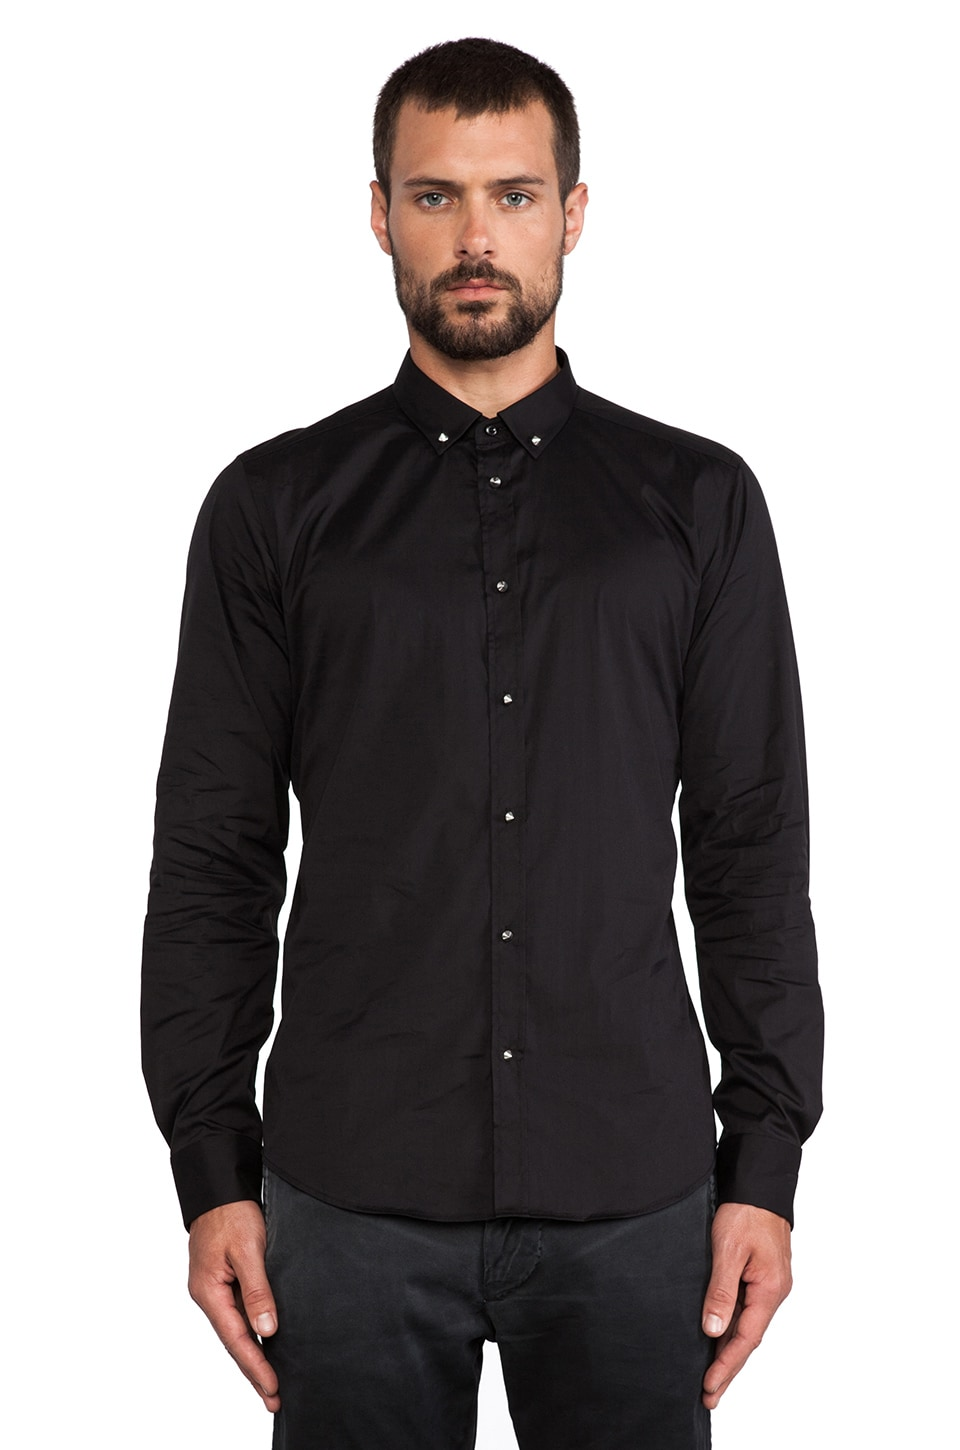 Diesel Dut Button Up in Black